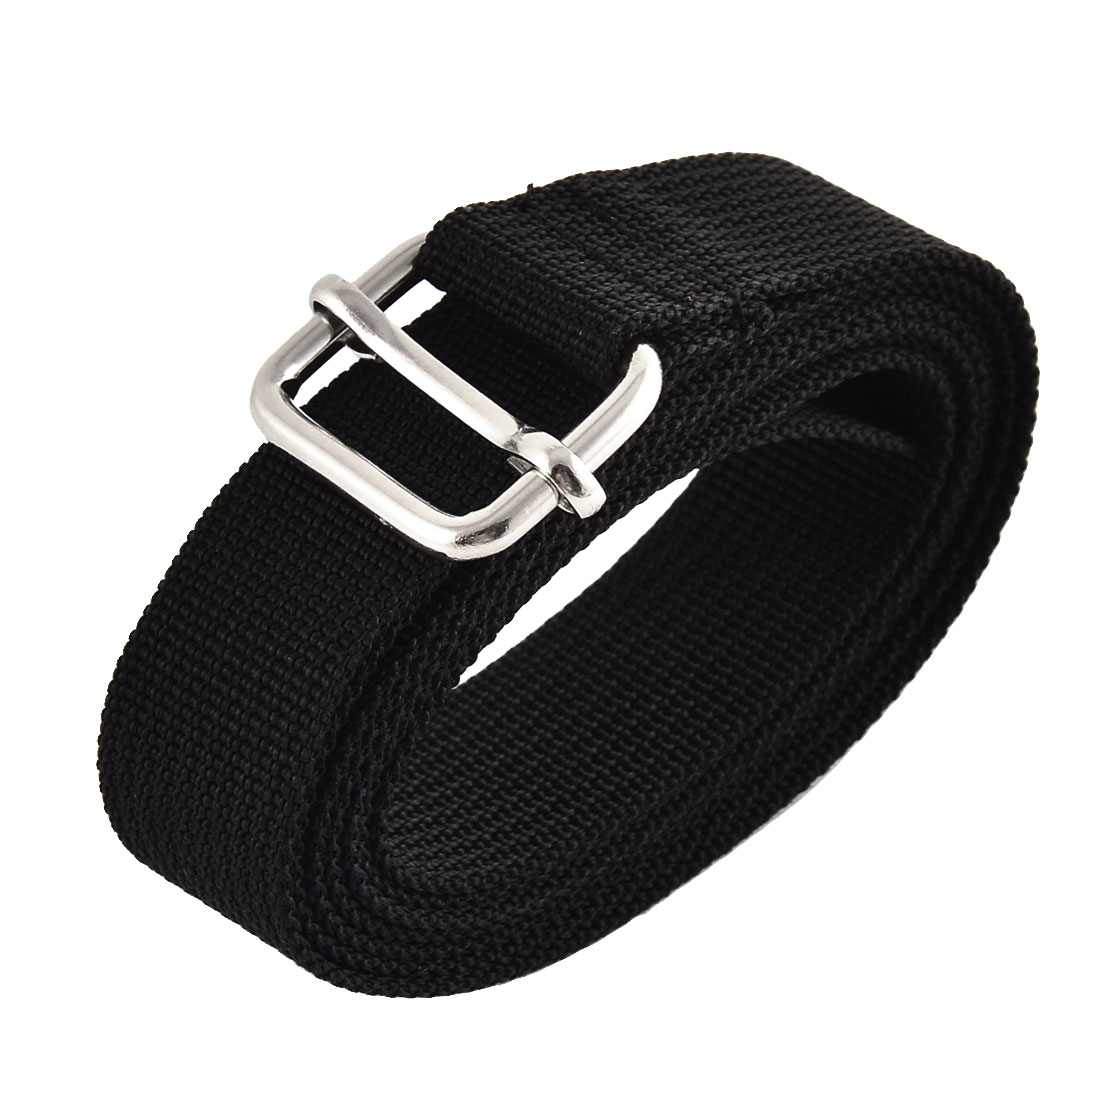 Travel Metal Loop Nylon Adjustable Suitcase Luggage Strap Belt Buckle Black 2.5 x 150cm